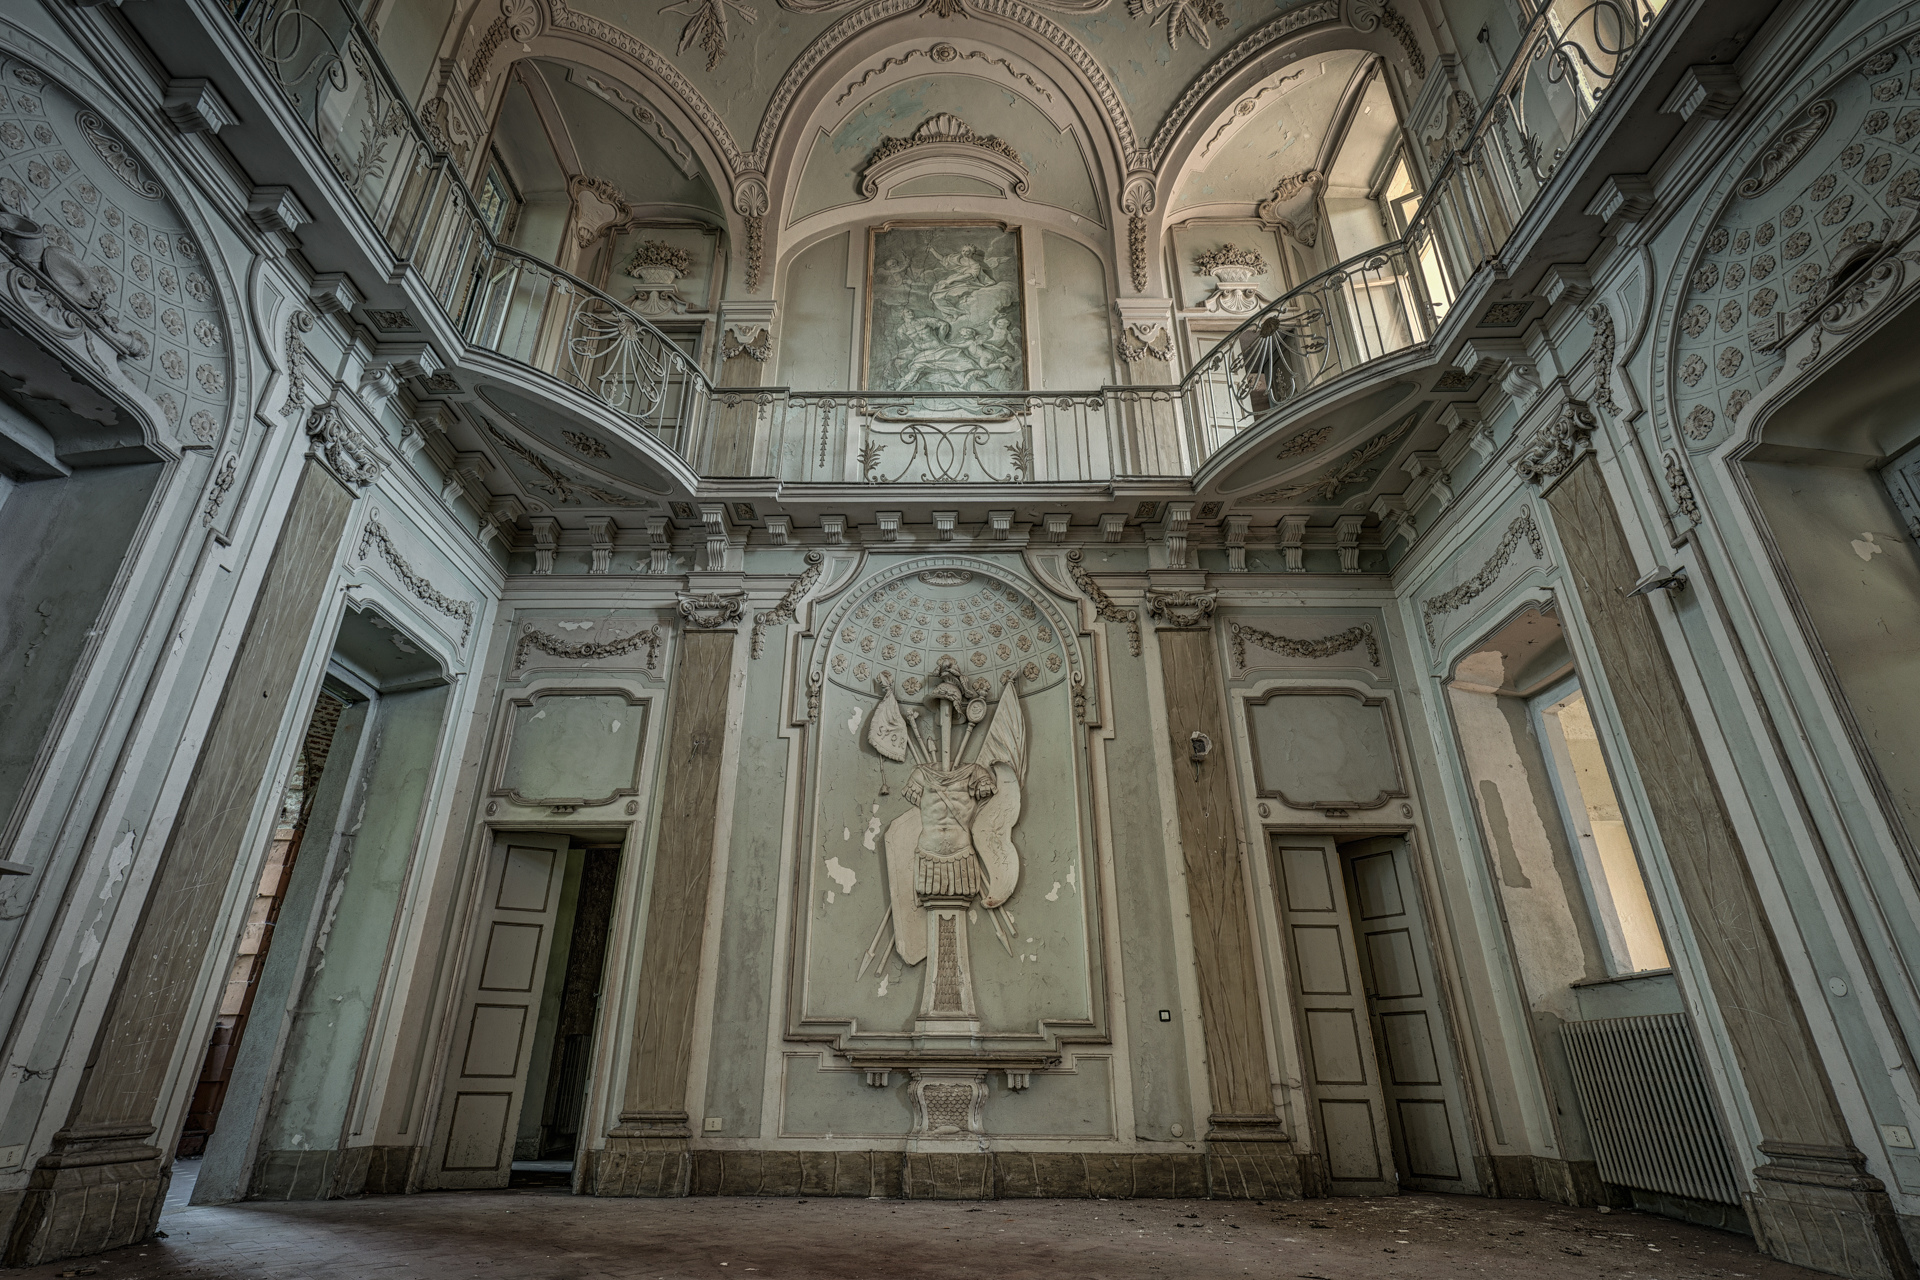 Urban Exploration - Rising Angels Villa - SPQR Entrance Hall